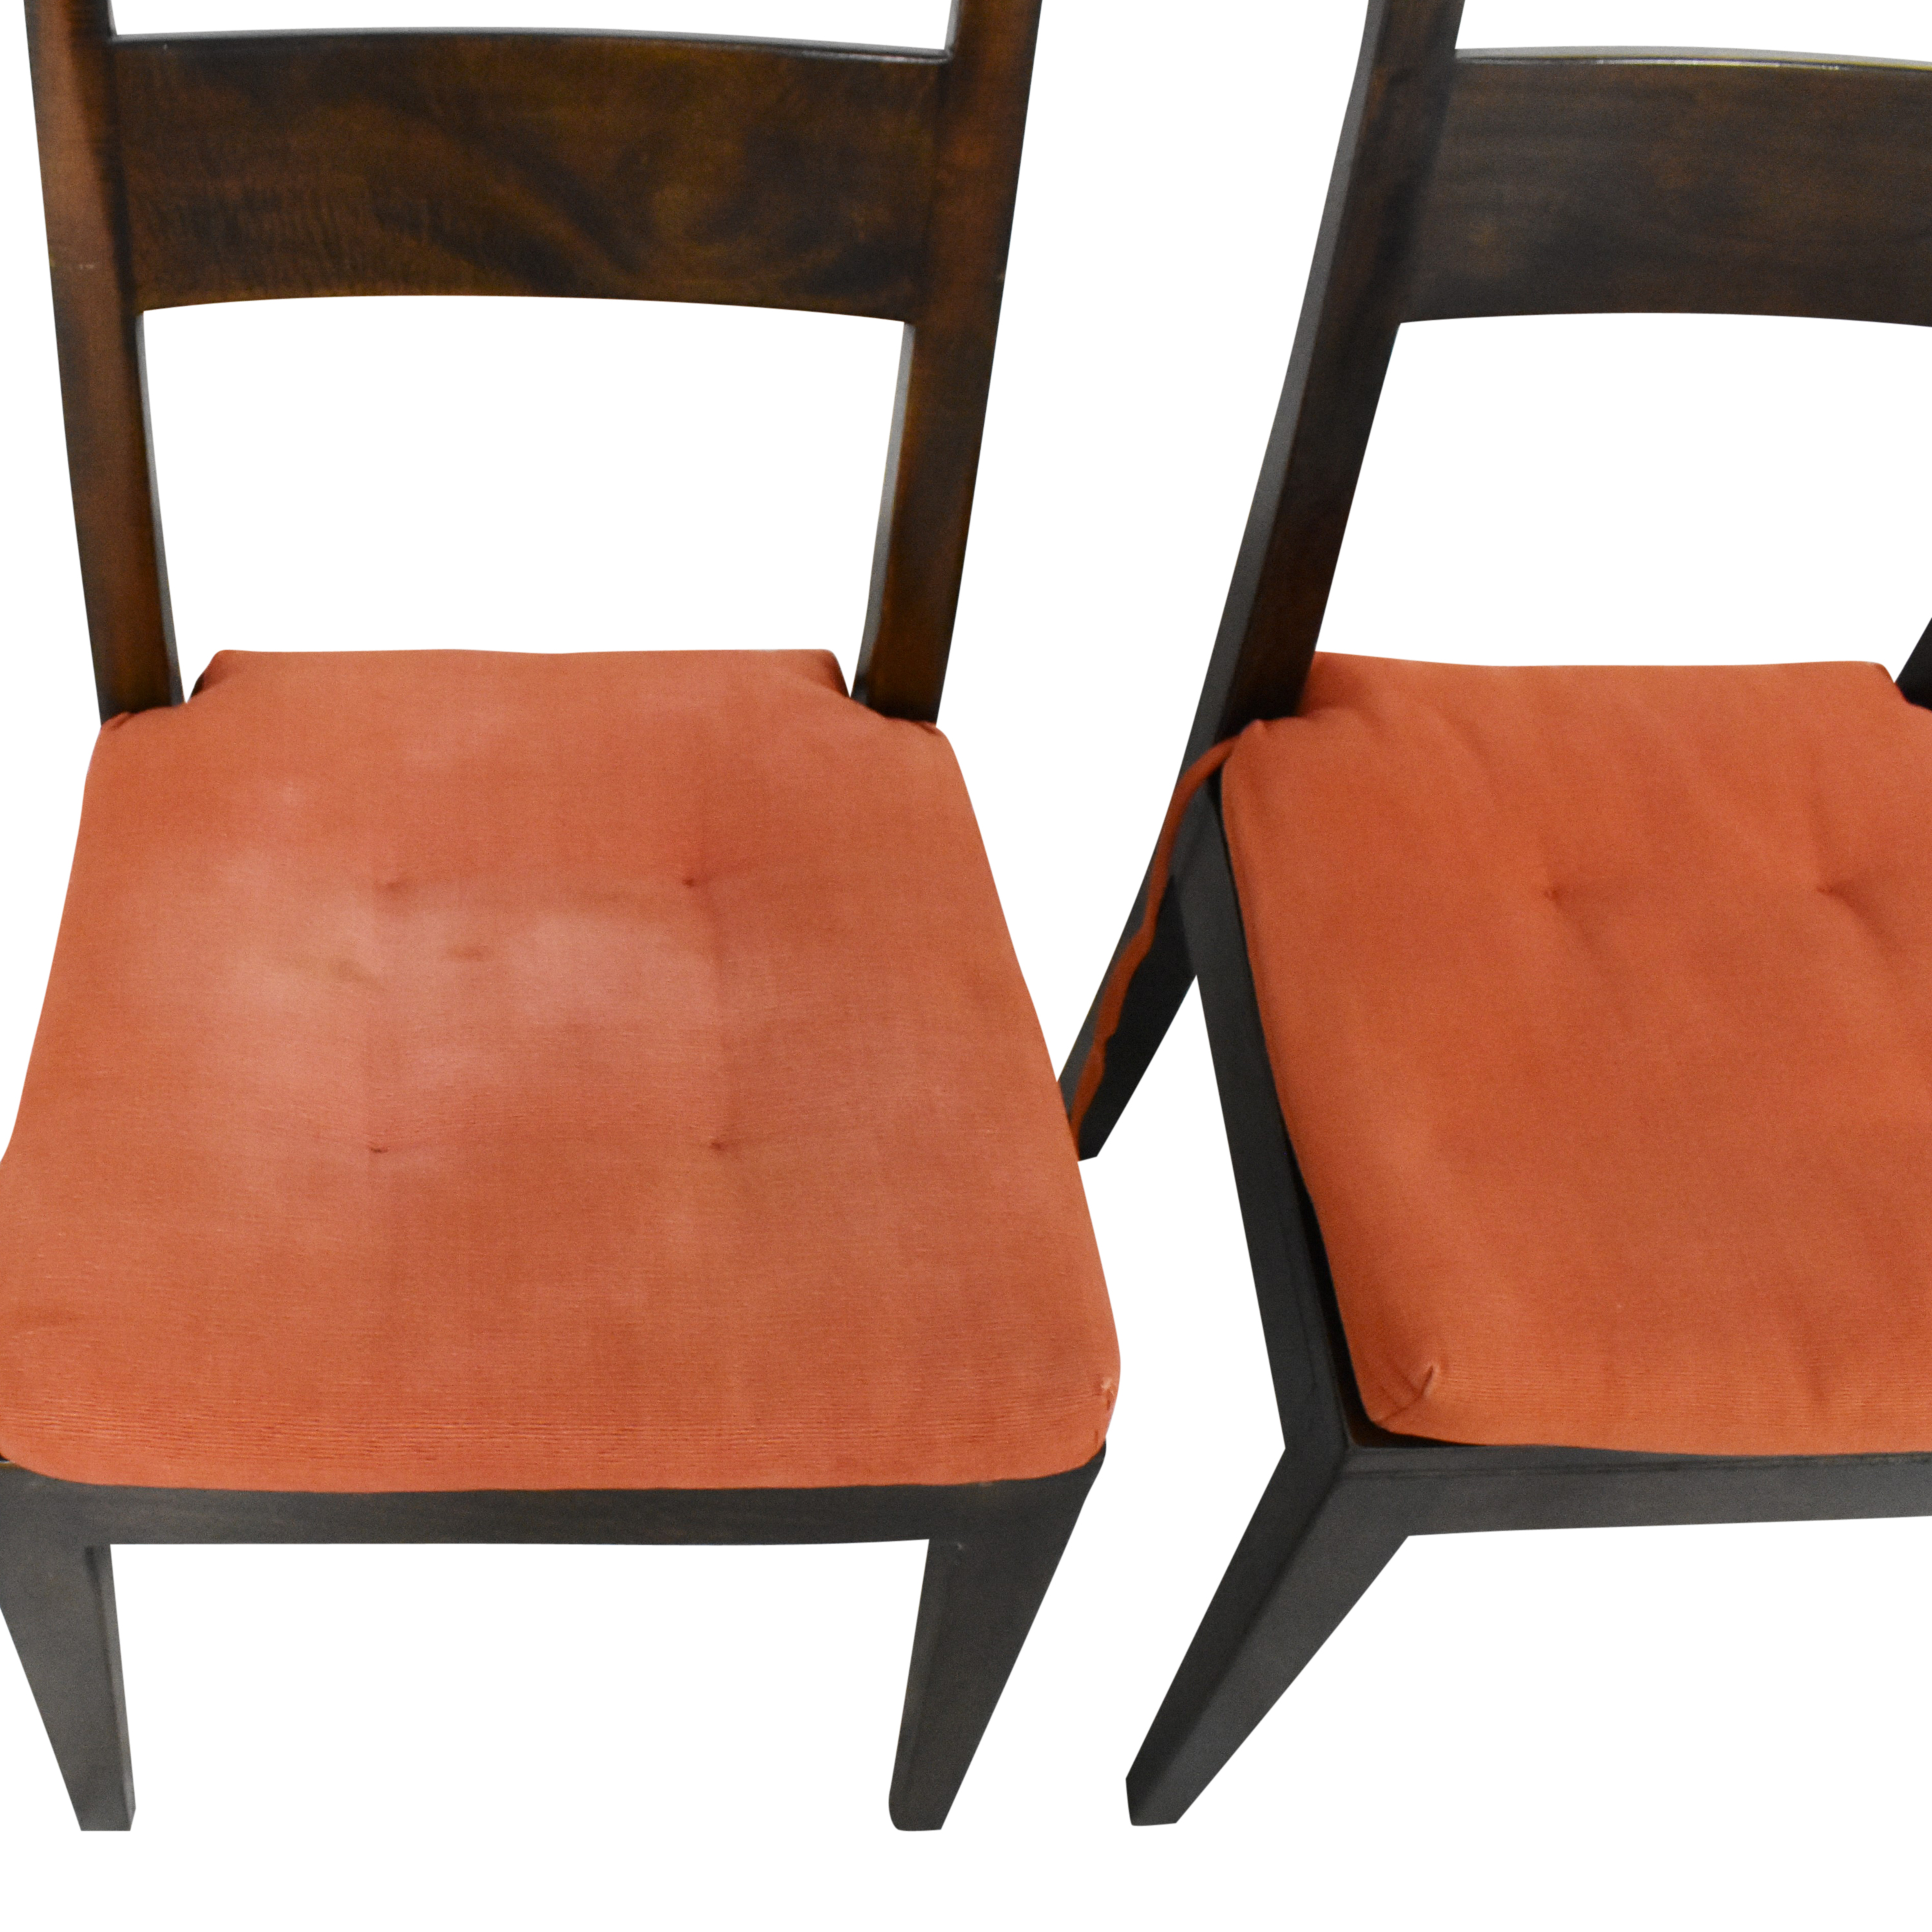 Crate & Barrel Crate & Barrel Basque Dining Side Chairs second hand